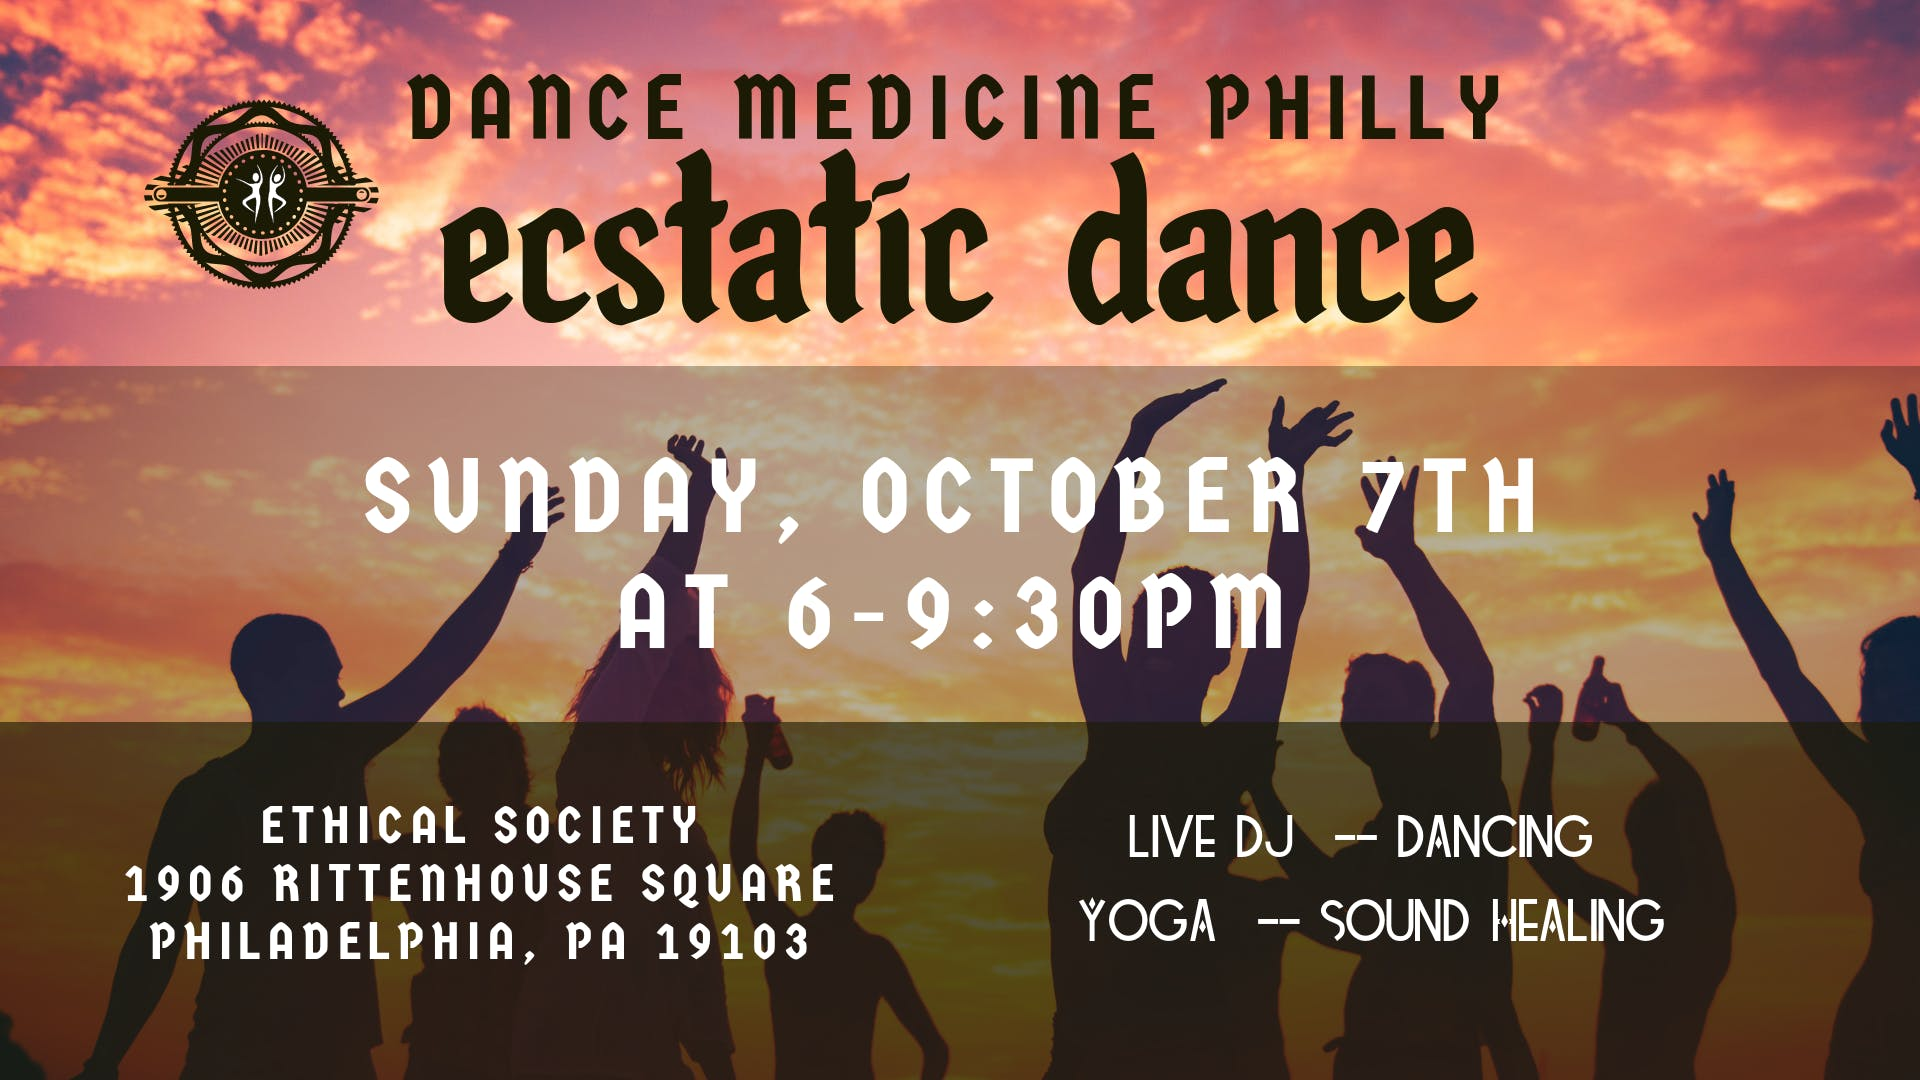 Dance Medicine Philly Presents: Ecstatic Dance October 7th - 7 OCT 2018